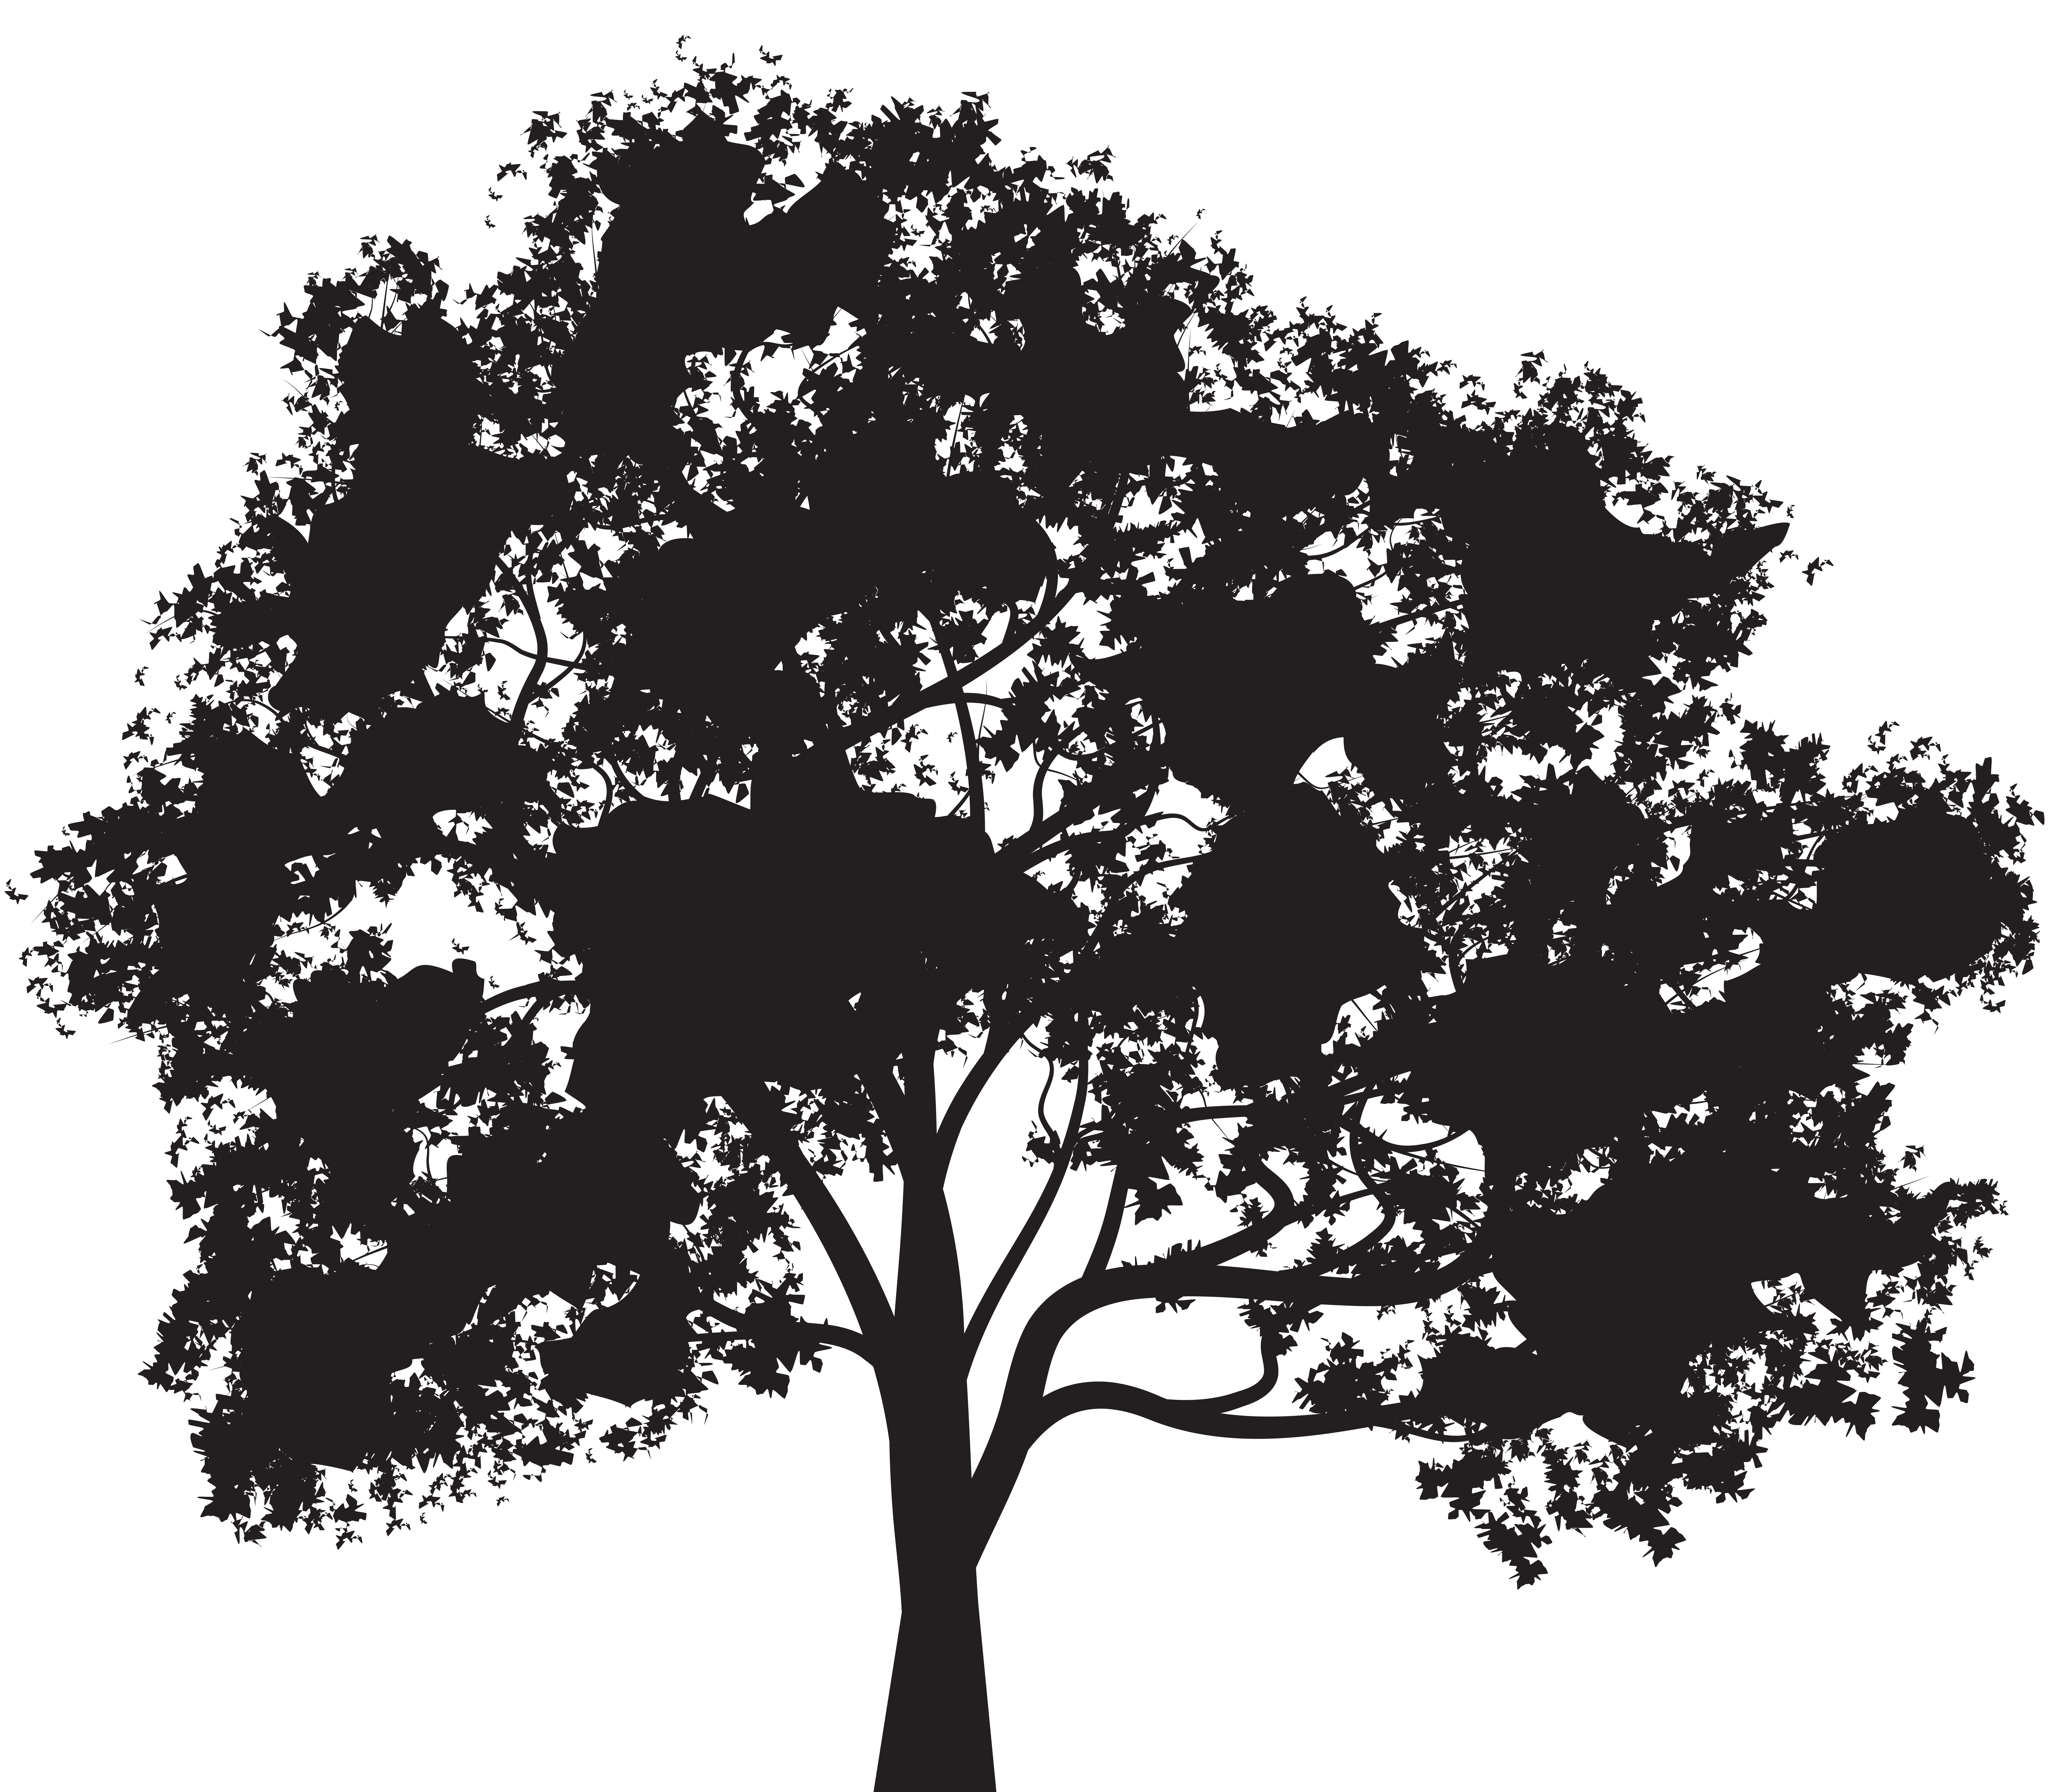 tree silhouette clipart png 20 free Cliparts | Download ...